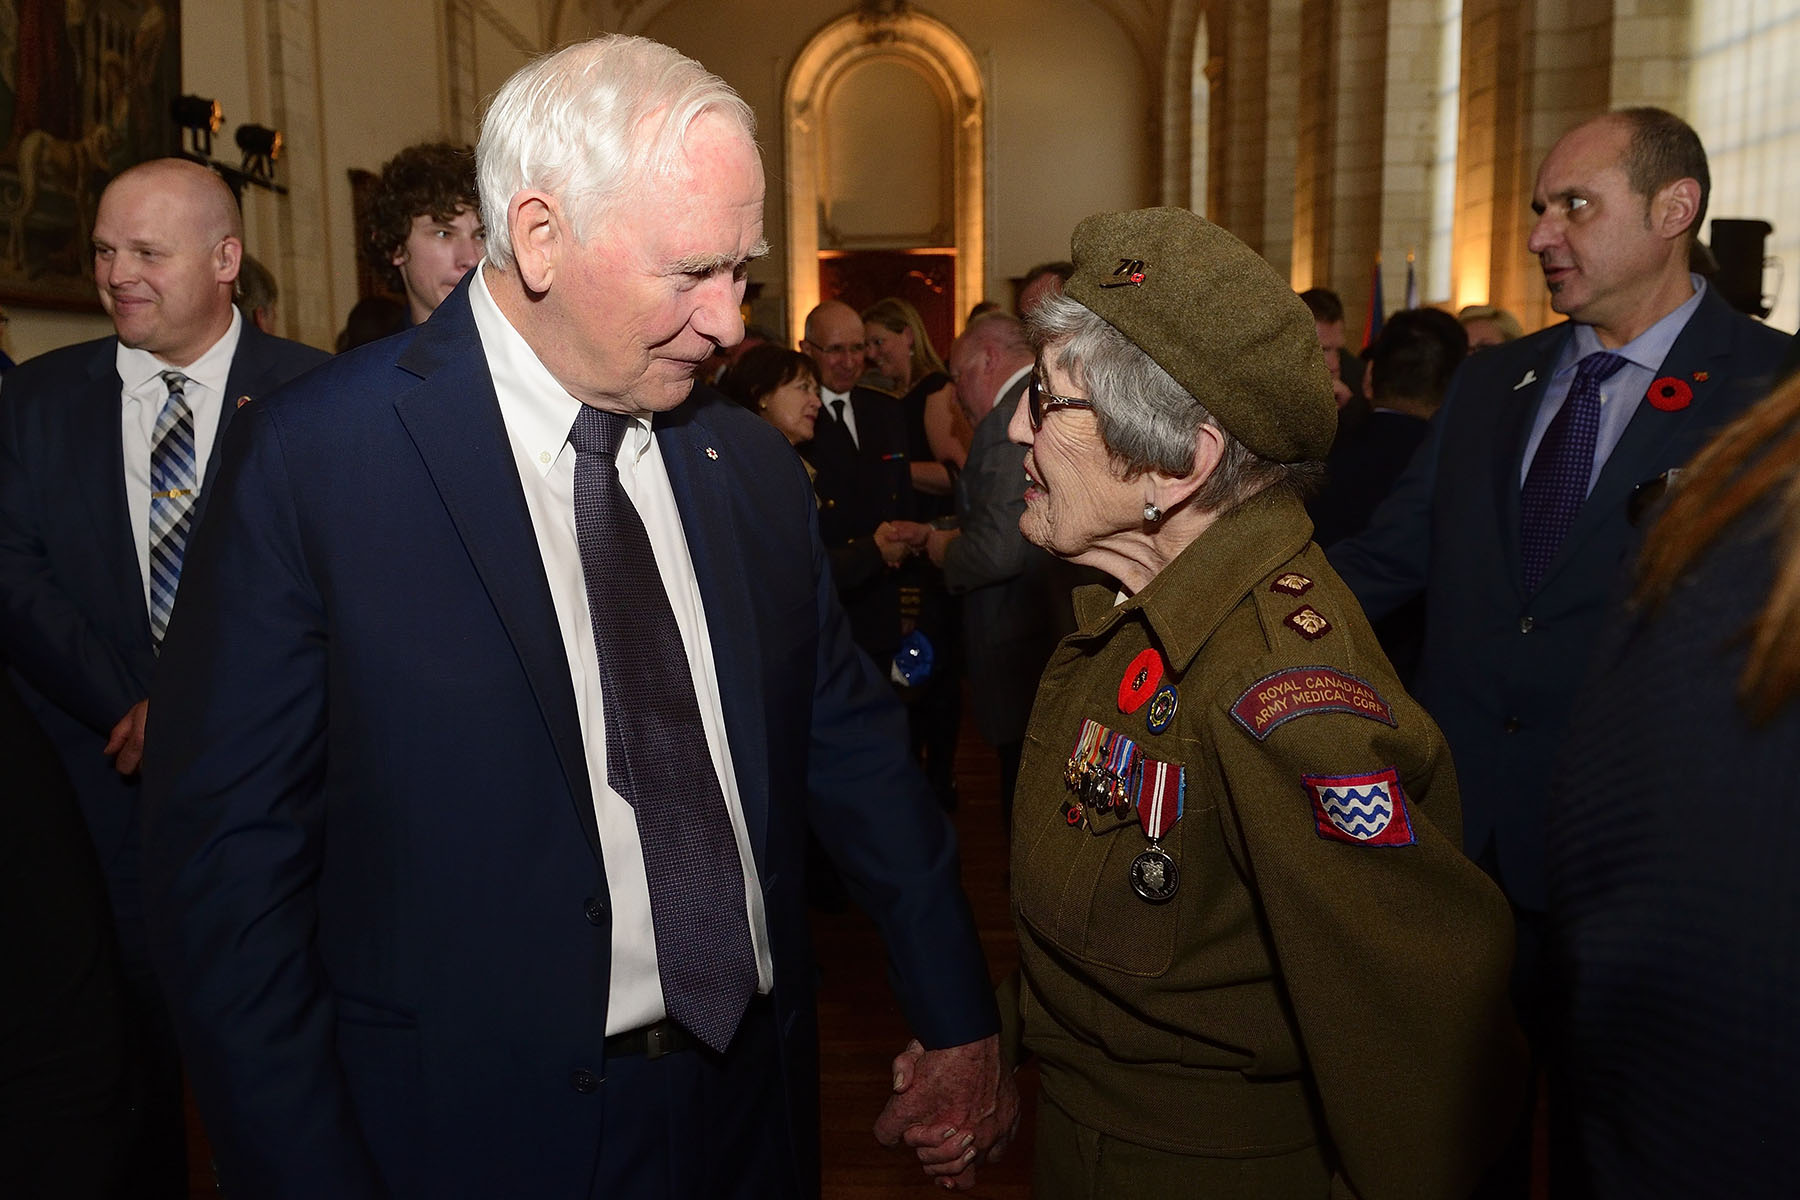 His Excellency also had the chance to meet with veterans who attended the special reception.